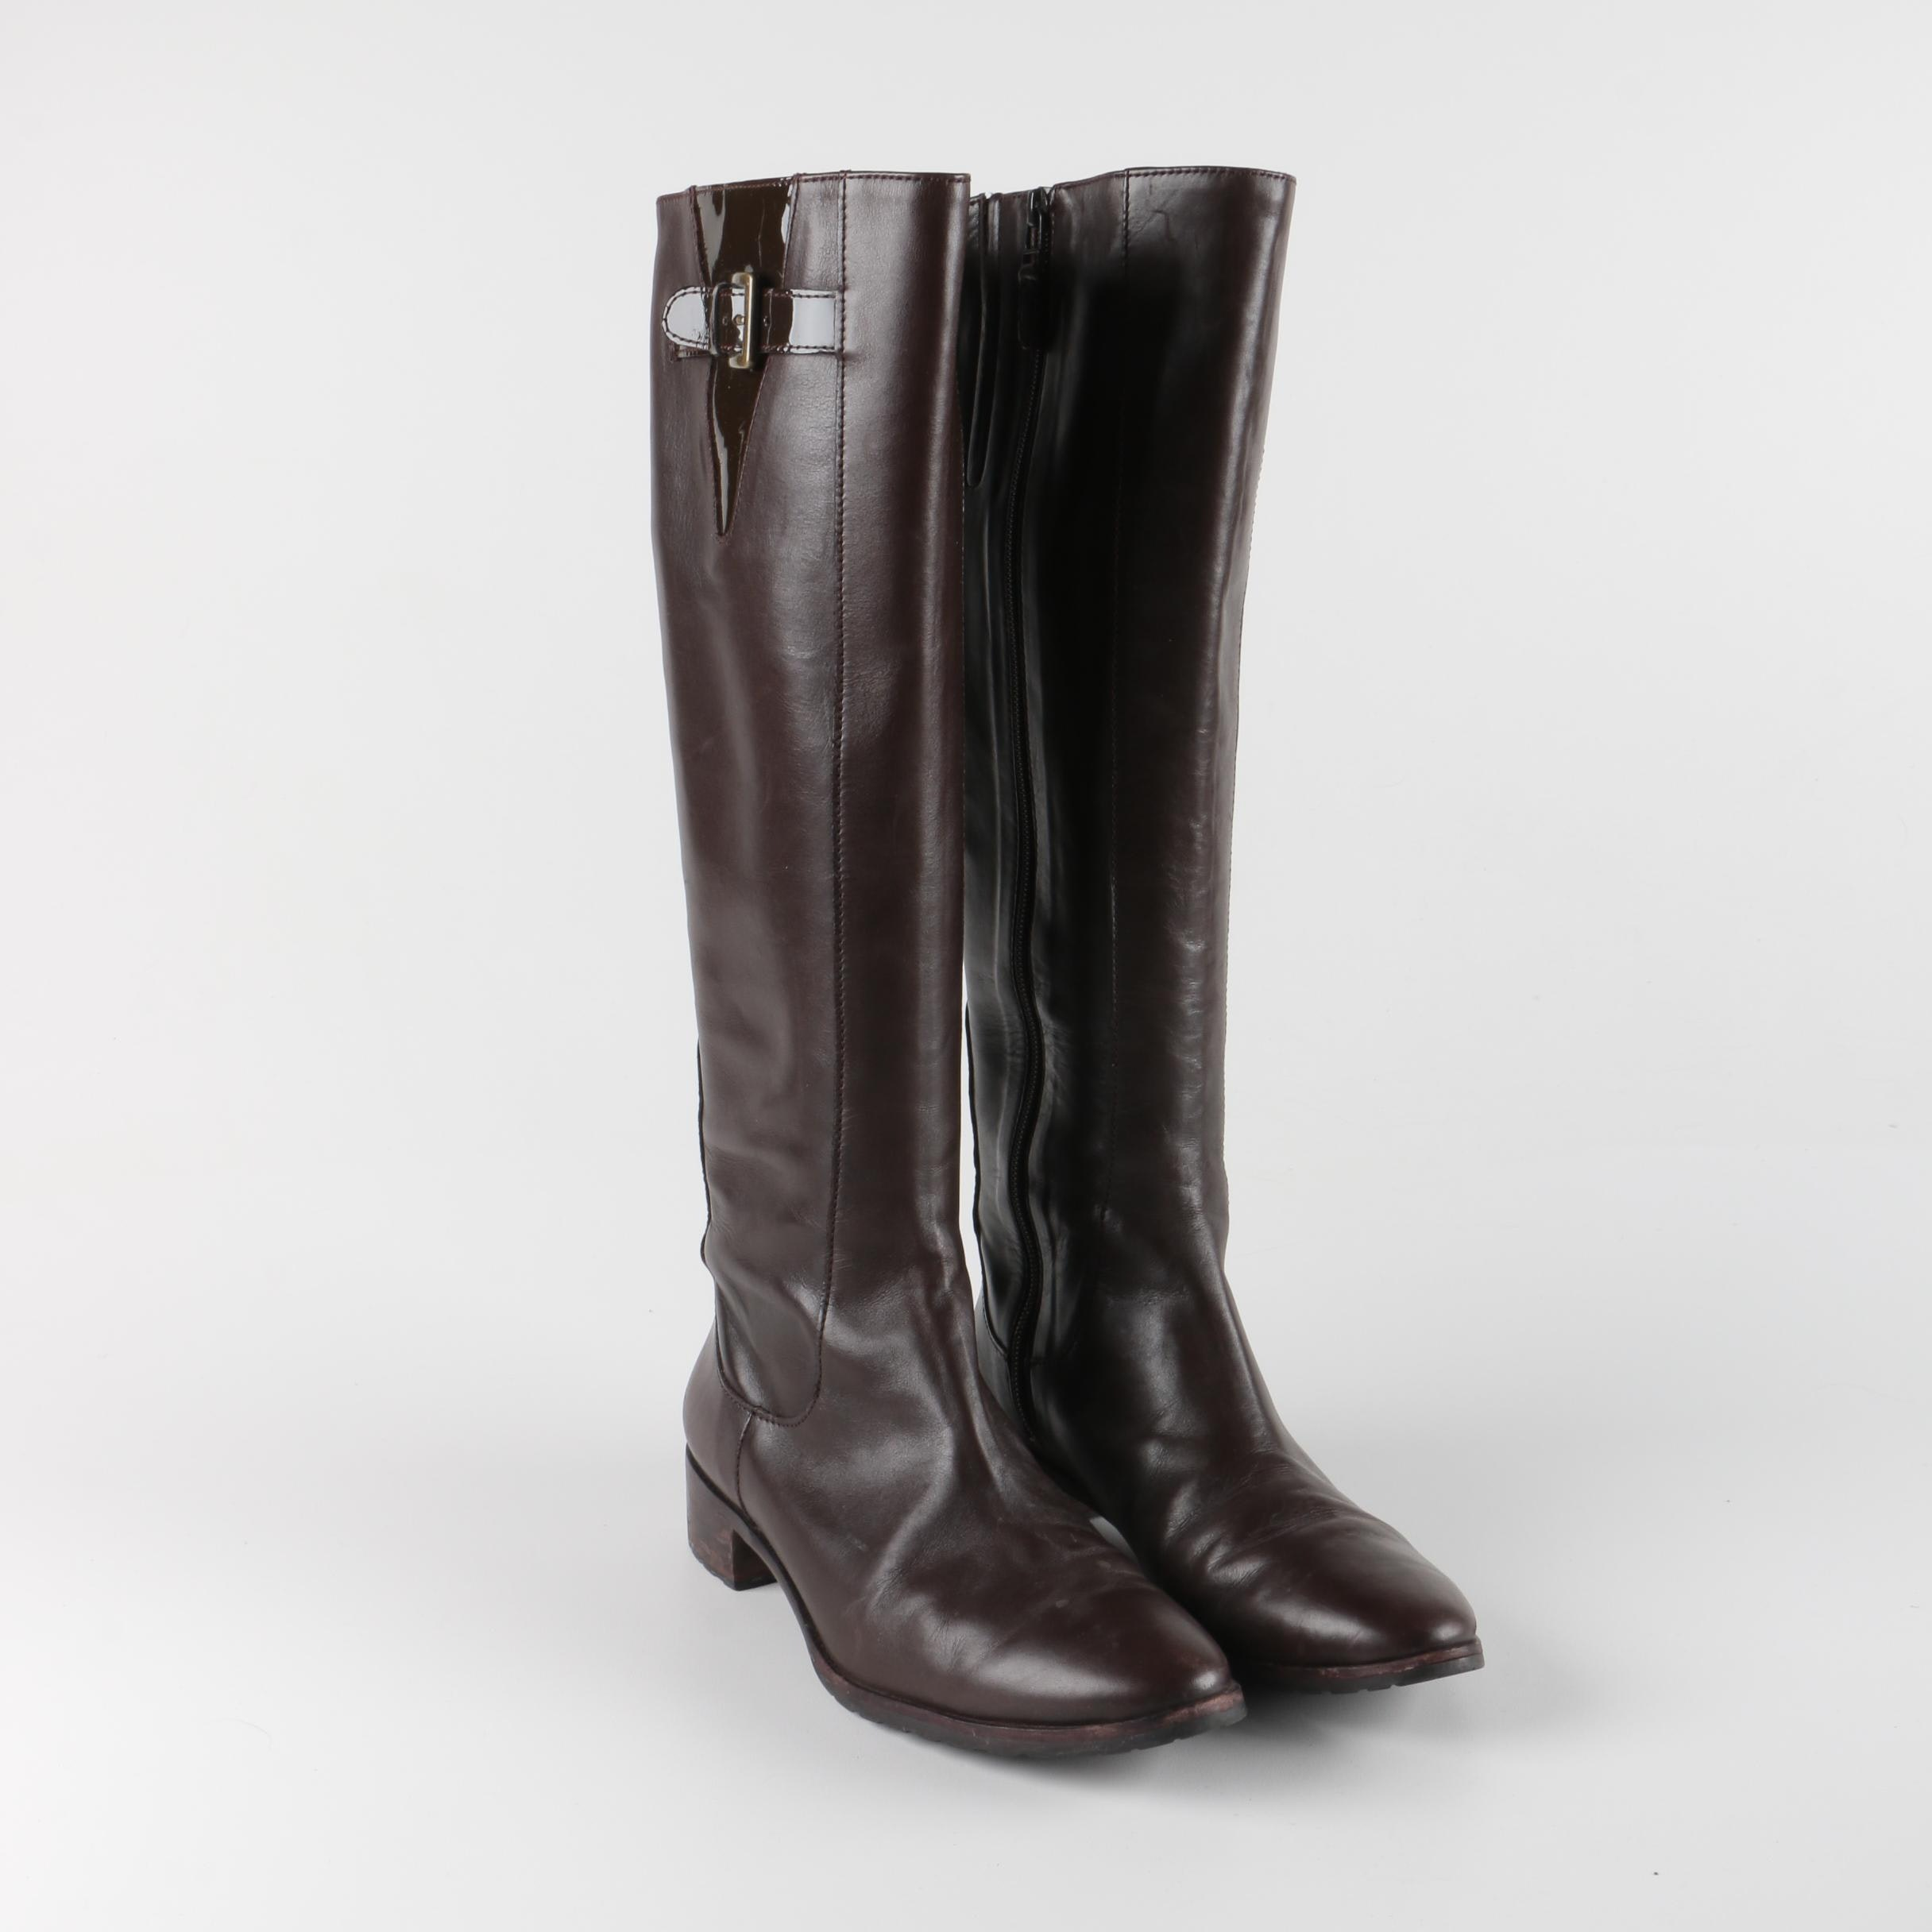 Women's Cole Haan Brown Leather Boots